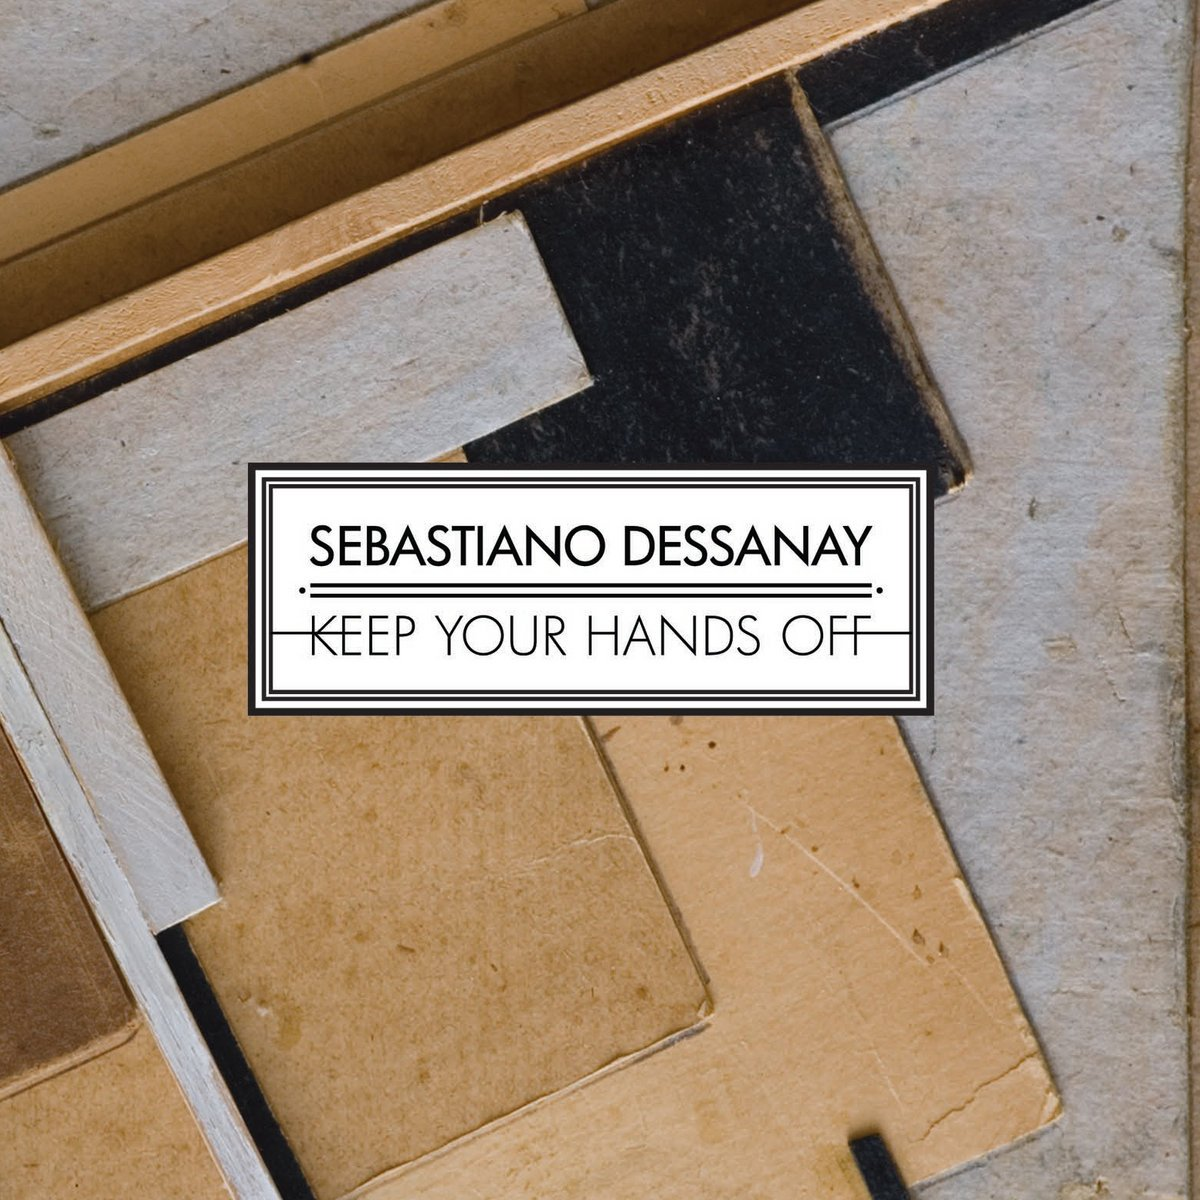 Keep Your Hands Off Sebastiano Dessanay